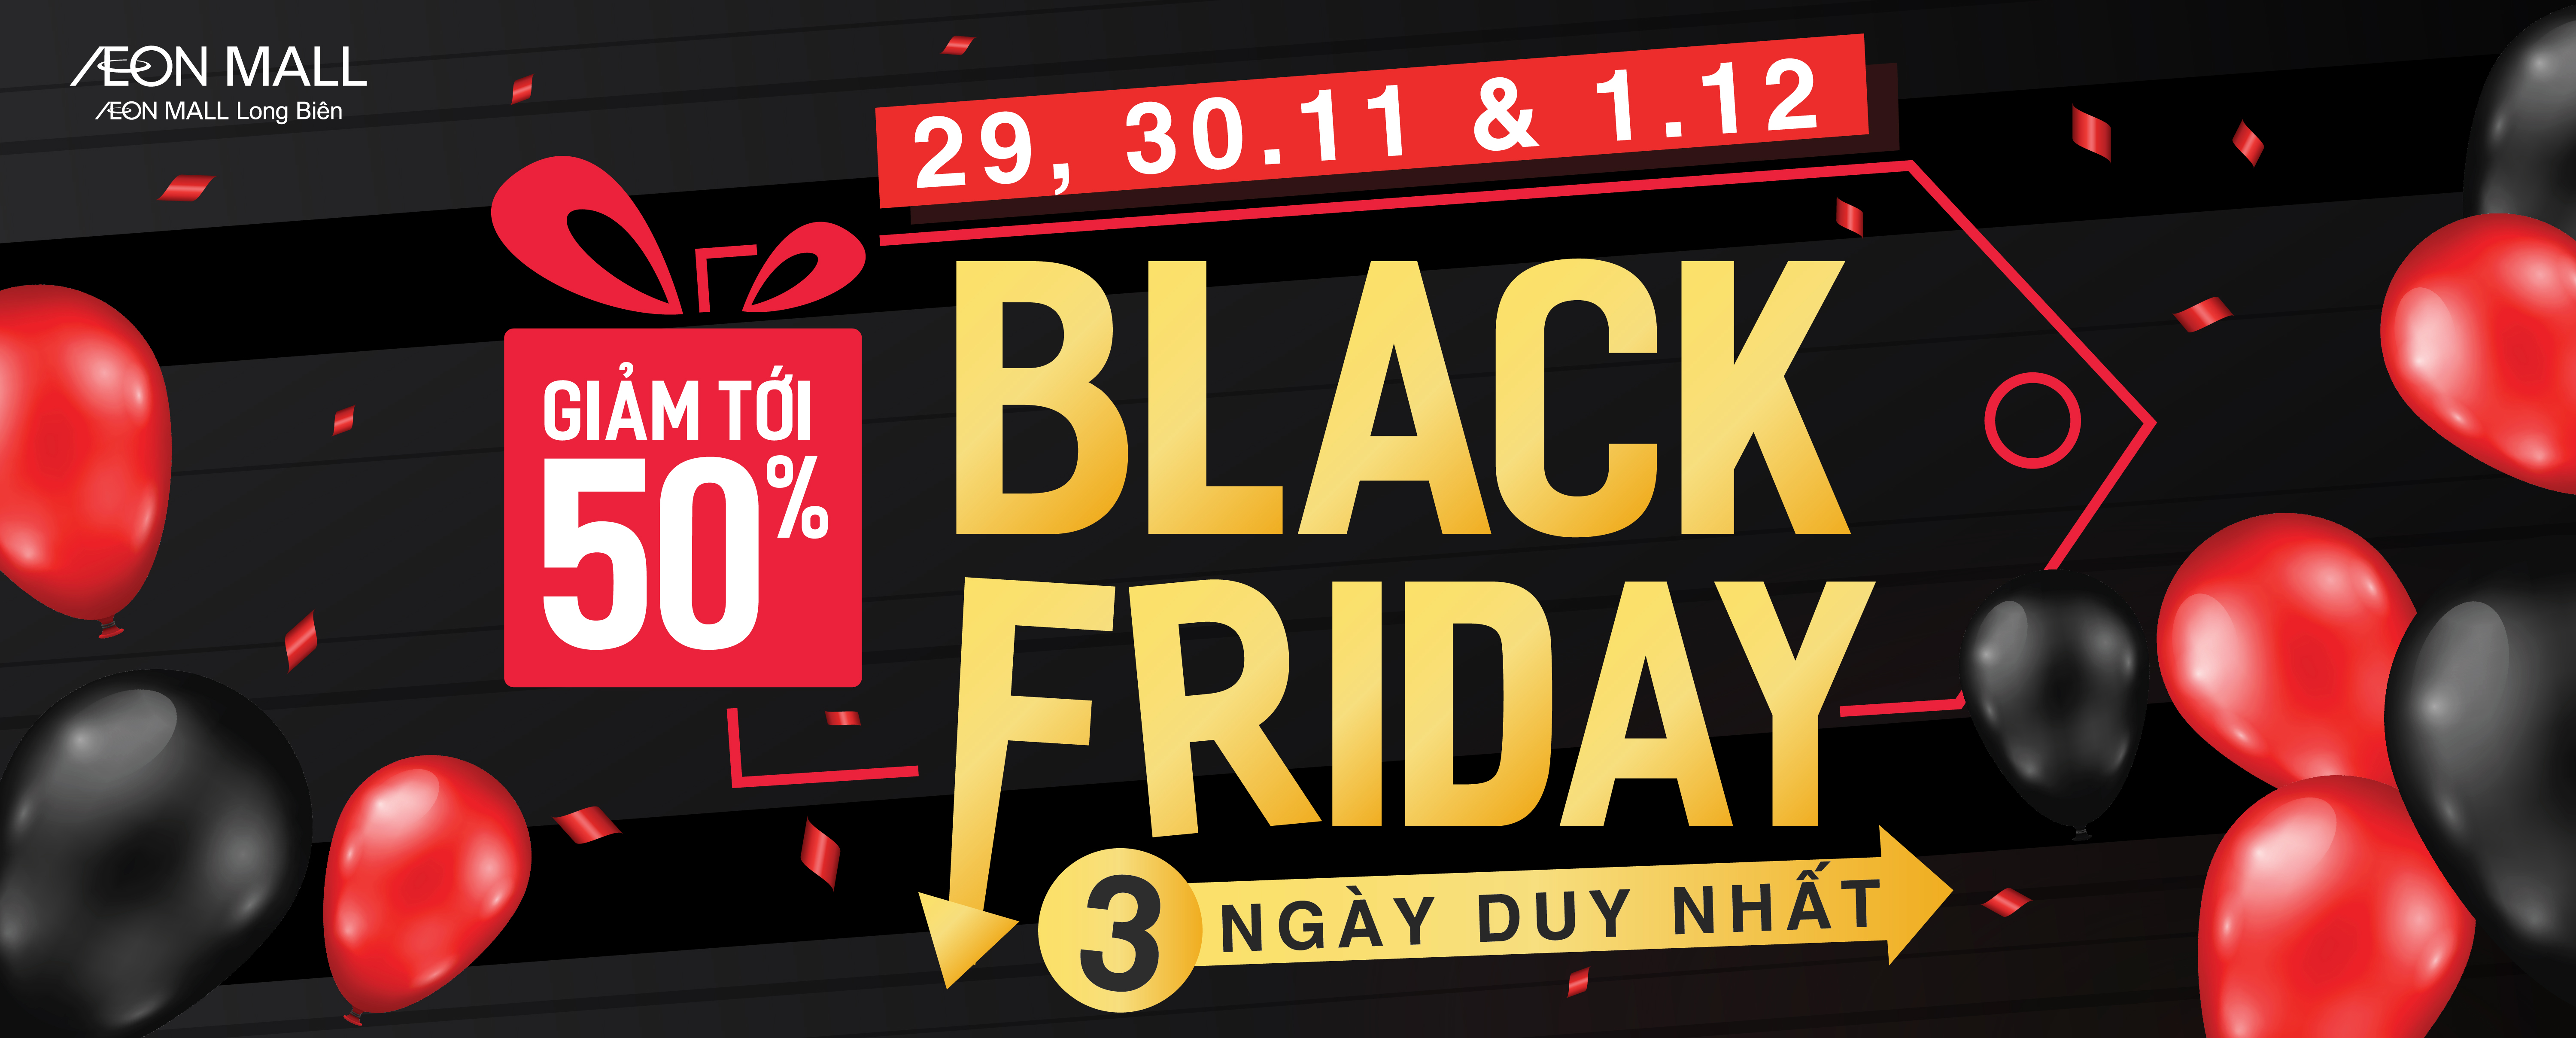 Black Friday AEON MALL Long Biên